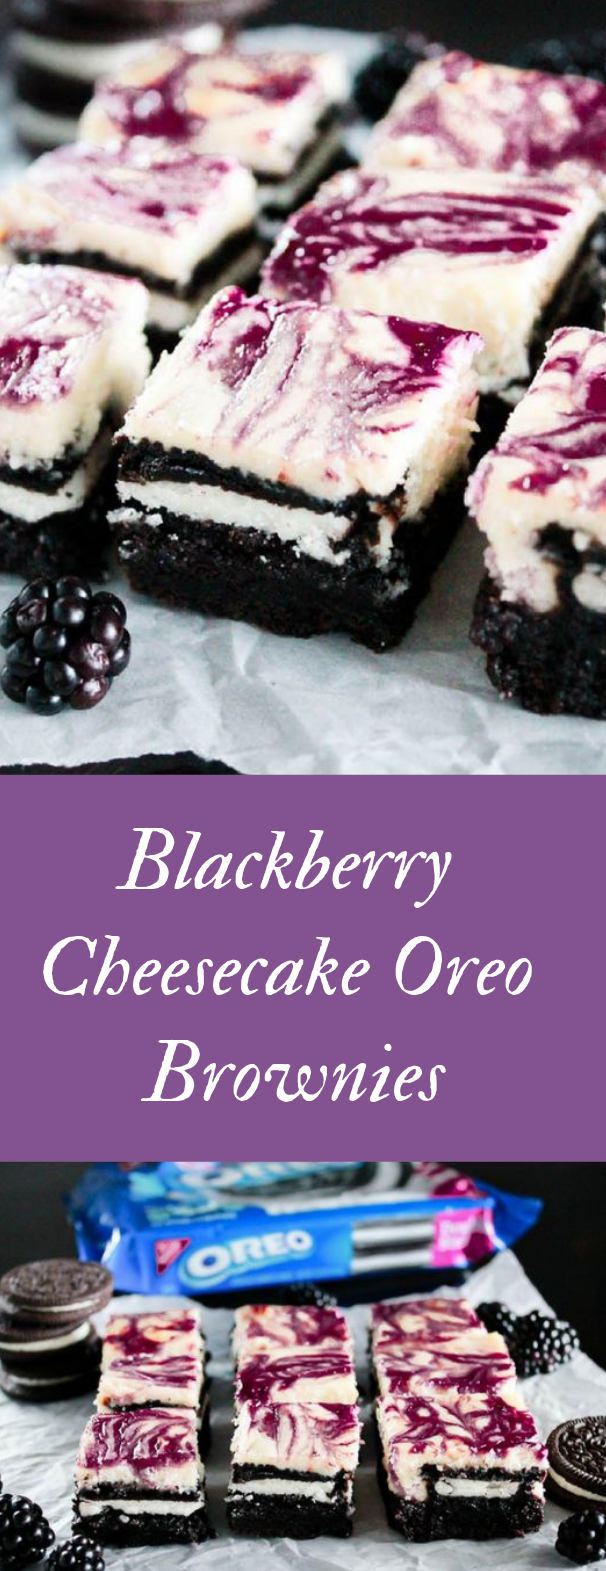 Blackberry Cheesecake OREO Brownies #dessert #cake